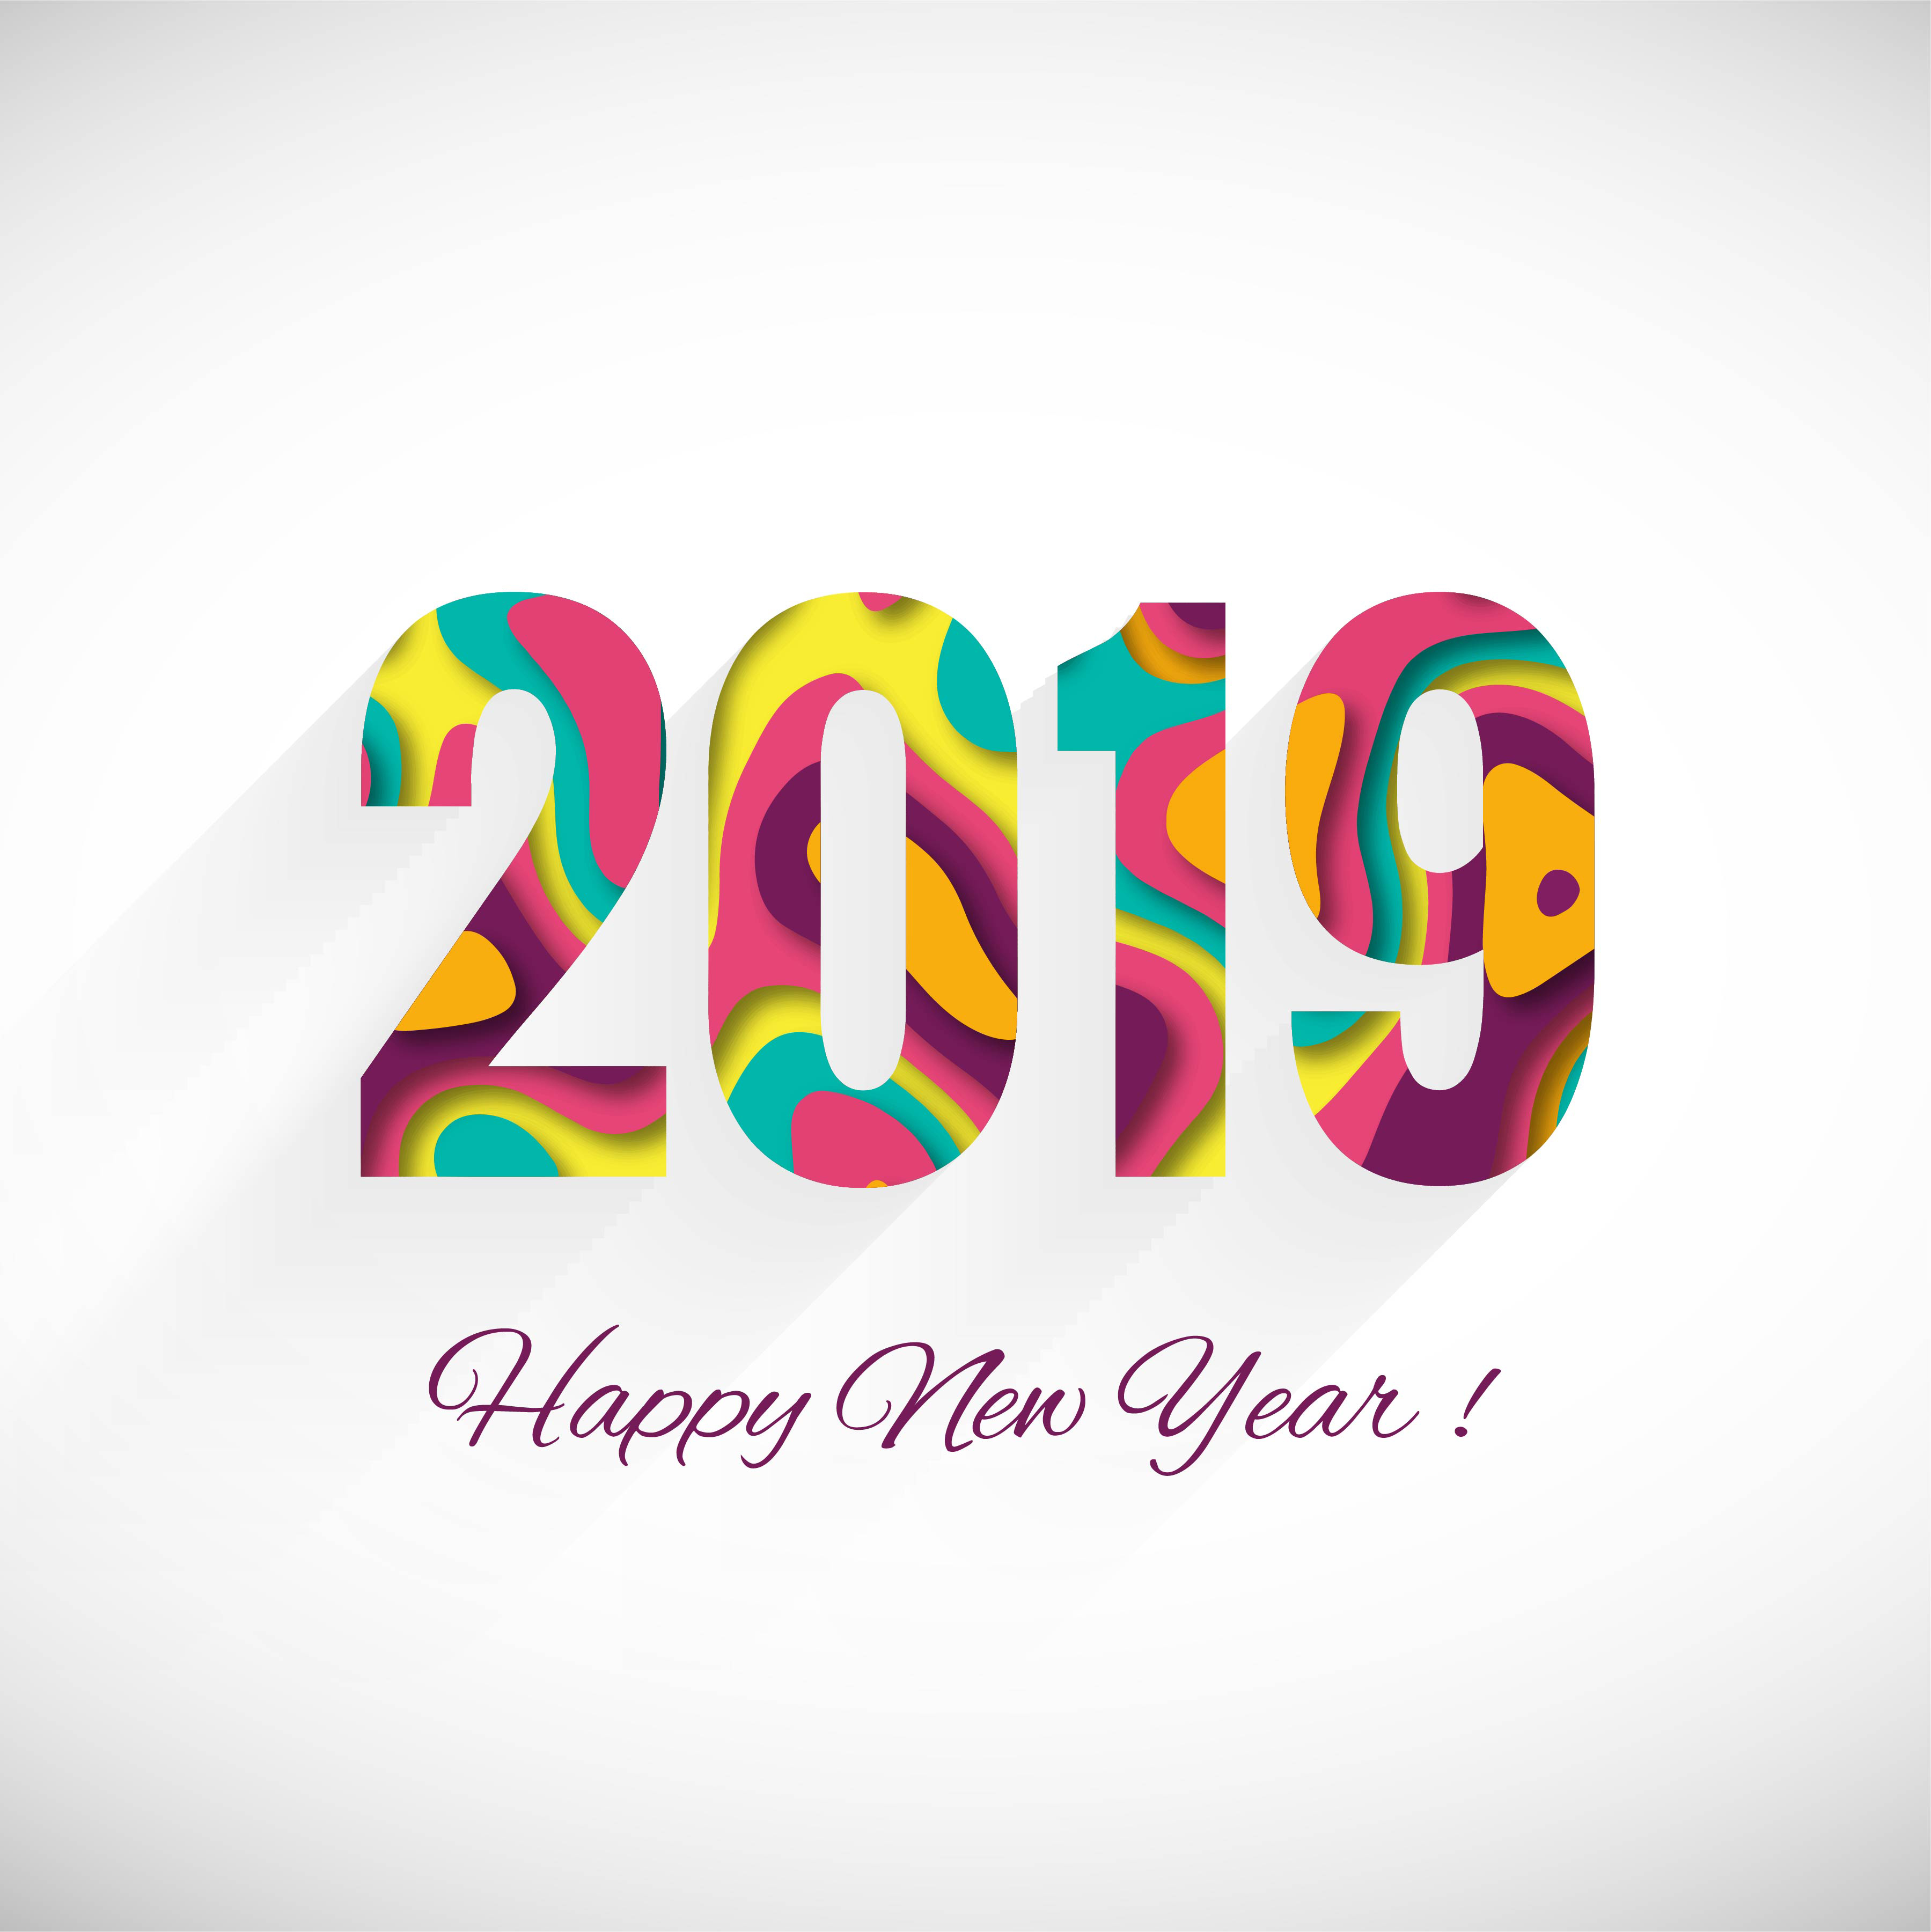 2019: Happy New Year 2019 Card Celebration Colorful Background